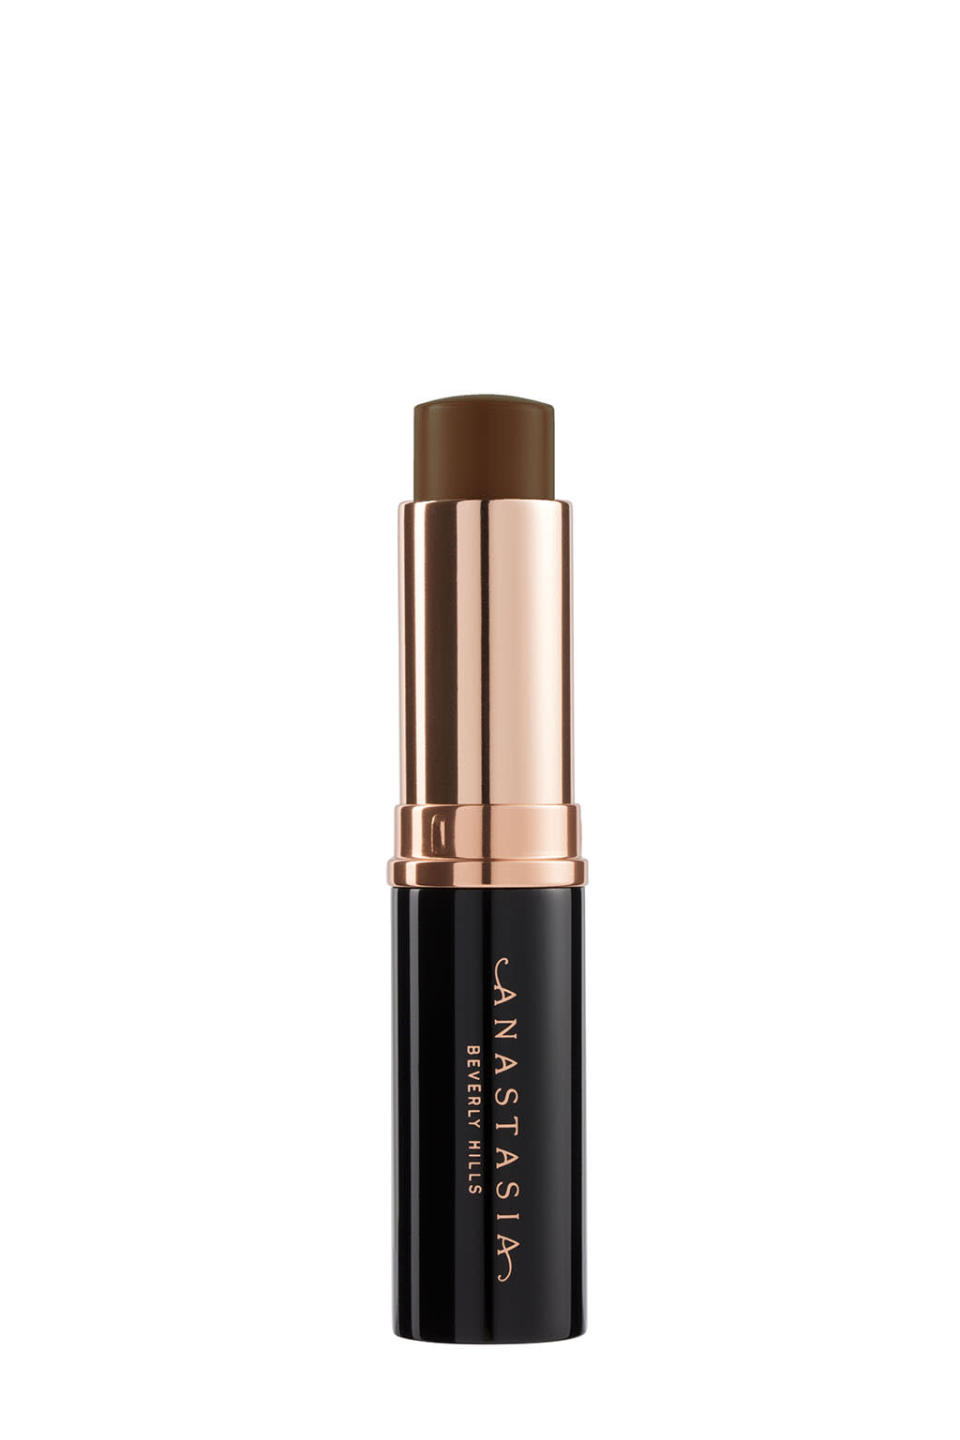 """<p>The president of Anastasia Beverly Hills, Claudia Soare, said in a release: """"The struggle of finding colors that match darker skin tones is a recurring theme when I'm meeting models. I really wanted to match everyone."""" Effectively, this highly pigmented stick foundation has about four categories (medium, medium tan, dark, and deep), with 16 shades that cater to the needs and wide range of brown skin tones. Additionally, it effortlessly glides on and can be used to help highlight and contour. $25, <a rel=""""nofollow noopener"""" href=""""http://www.anastasiabeverlyhills.com/stick-foundation.html"""" target=""""_blank"""" data-ylk=""""slk:AnastasiaBeverlyHills.com"""" class=""""link rapid-noclick-resp"""">AnastasiaBeverlyHills.com</a>. </p>"""